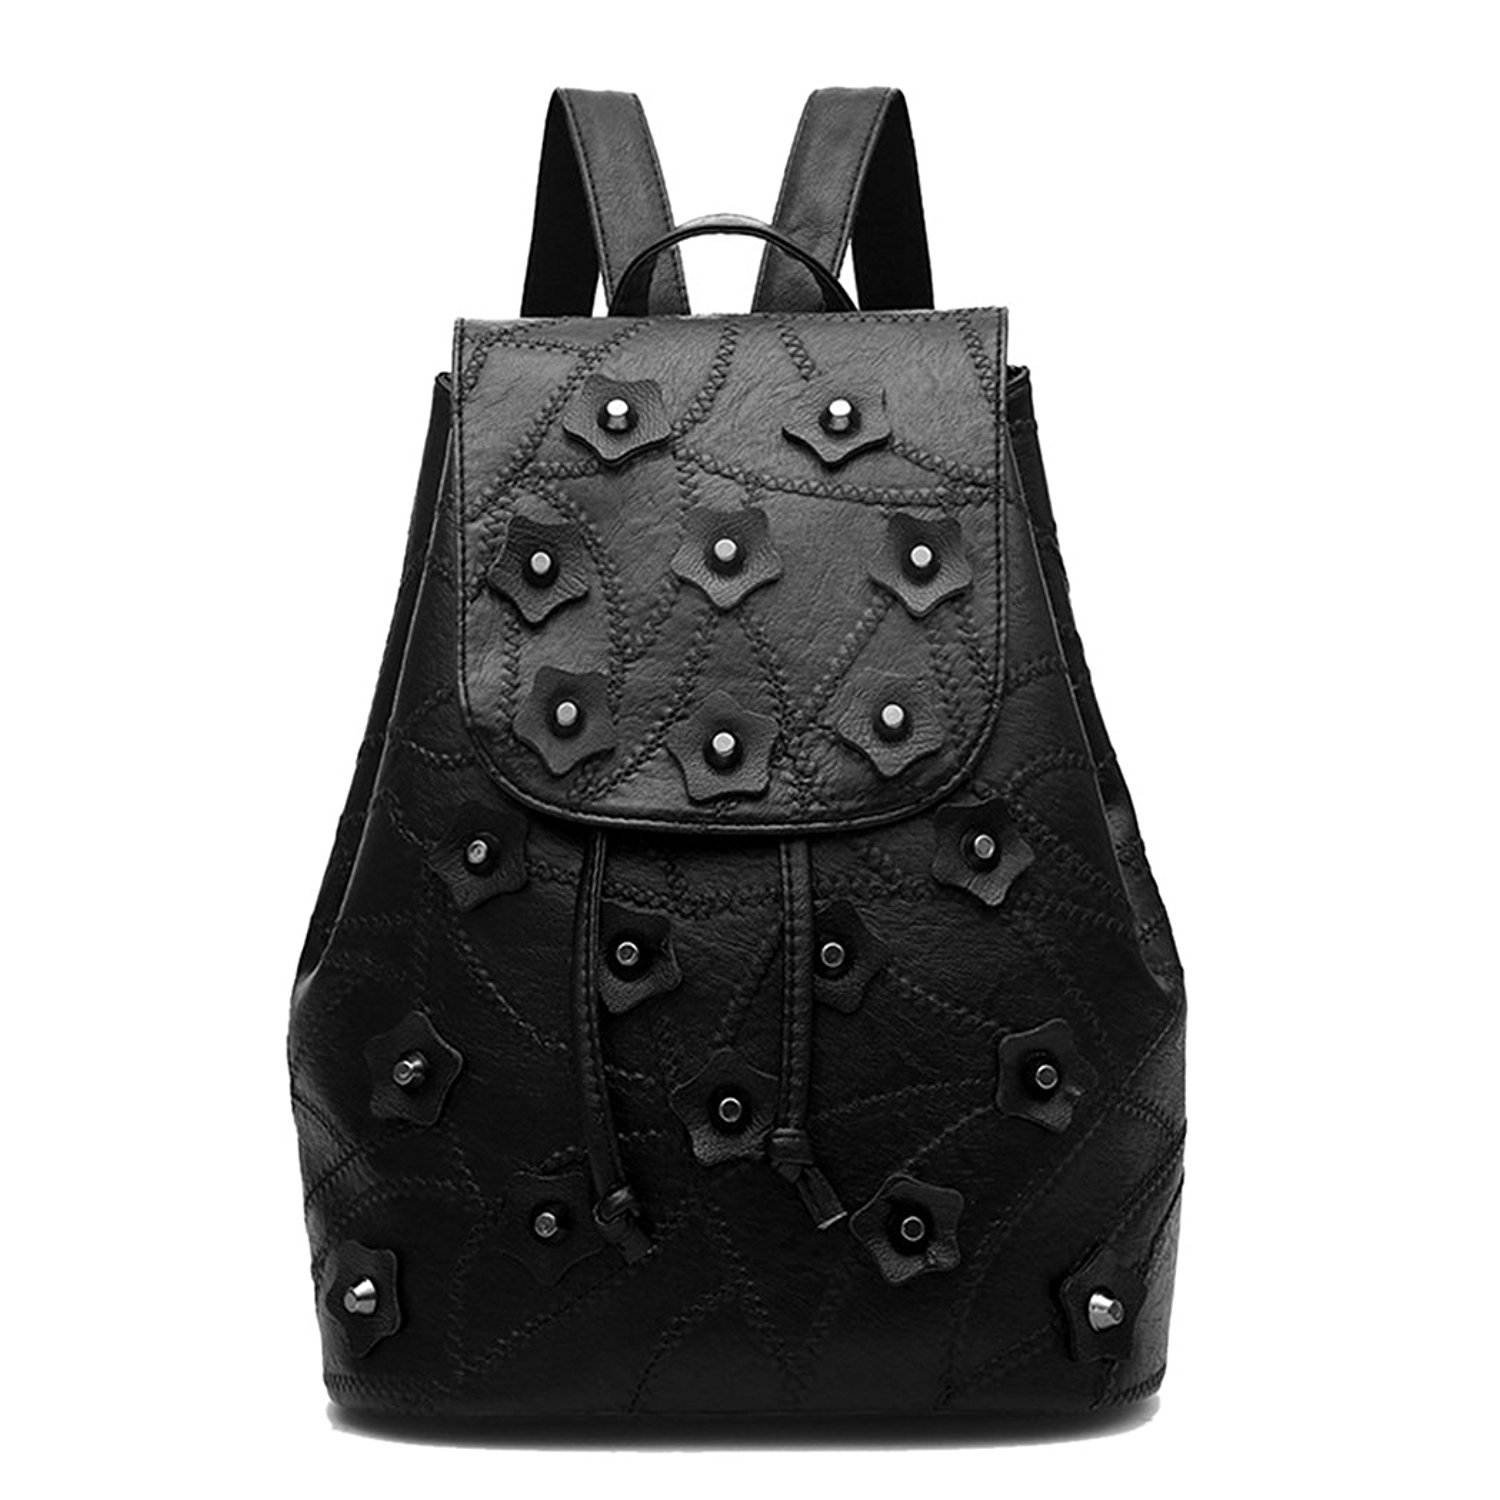 a4564e0eea Get Quotations · Women Backpack - Bageek Cool Backpack PU Leather Backpack  Purse Floral Rivet Designer Backpack